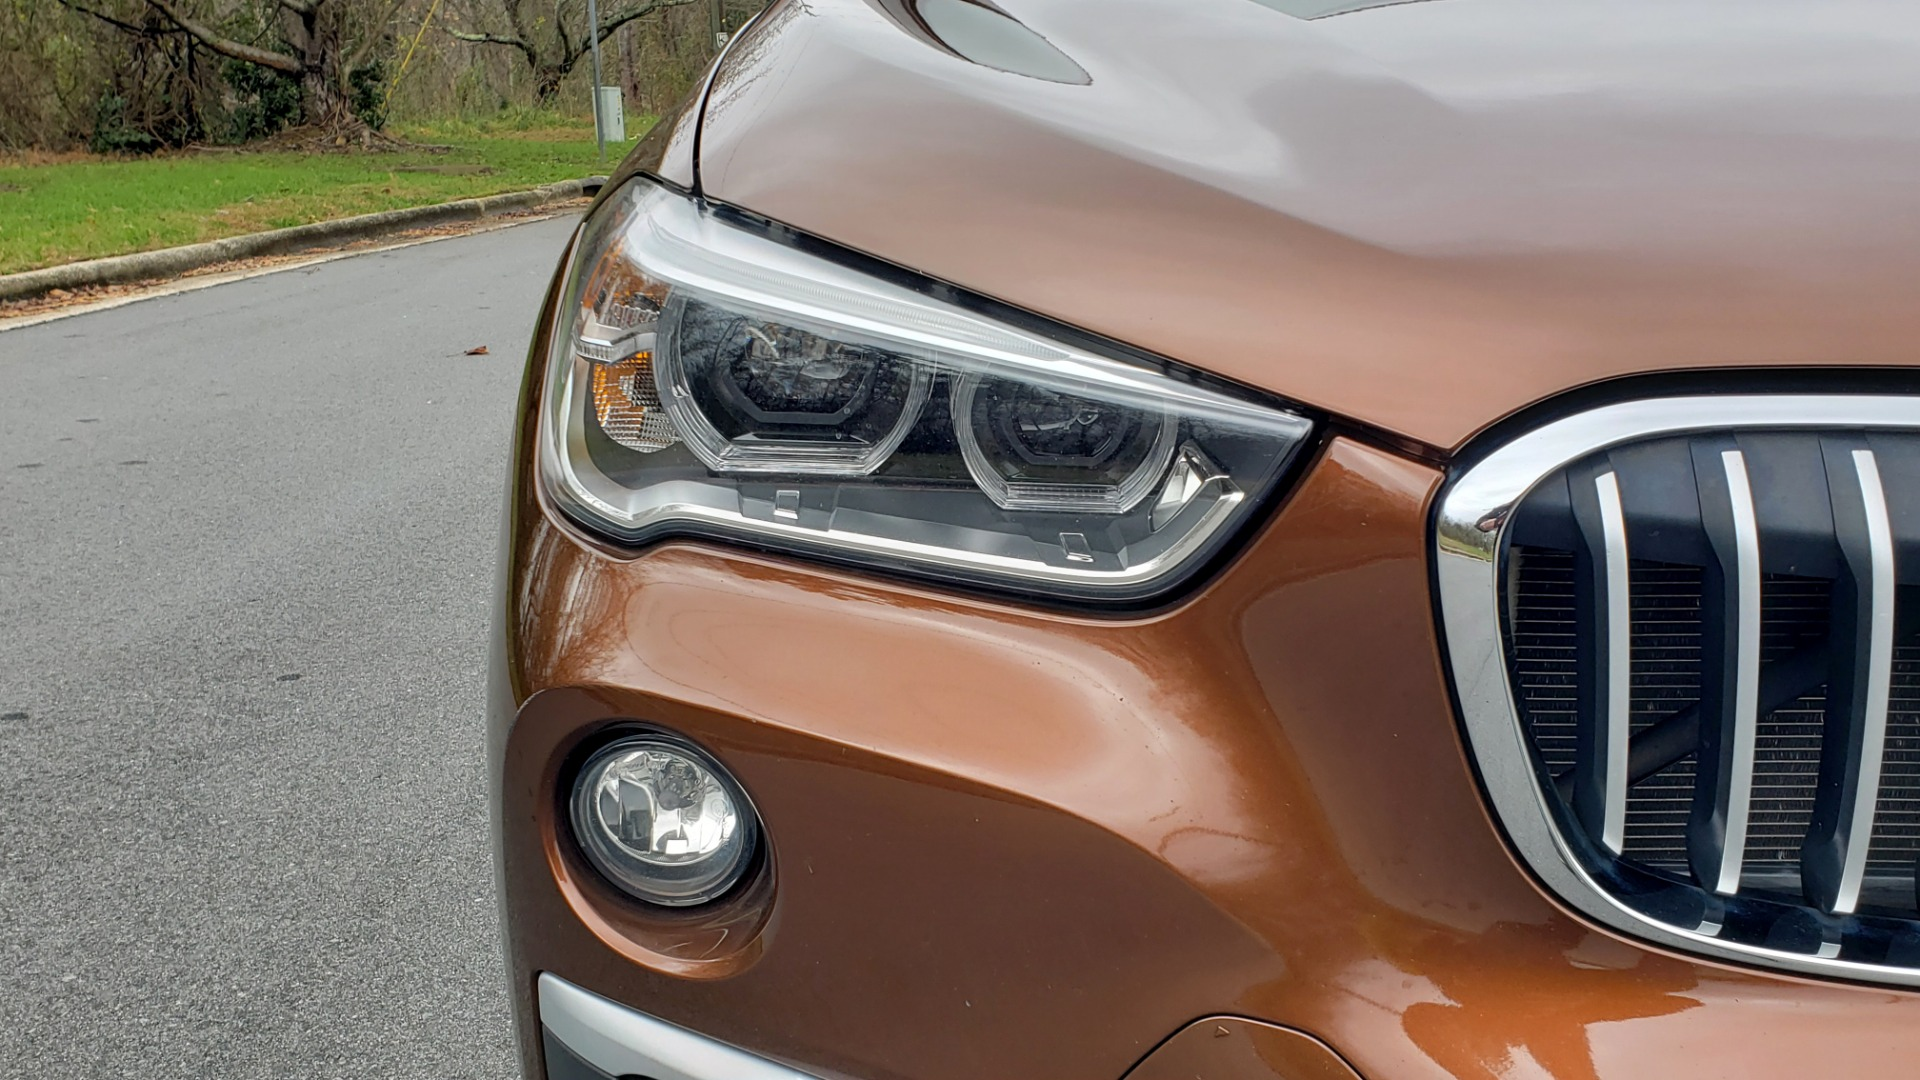 Used 2017 BMW X1 XDRIVE28I / PREM / TECH / DRVR ASST / COLD WTHR / REARVIEW for sale Sold at Formula Imports in Charlotte NC 28227 20